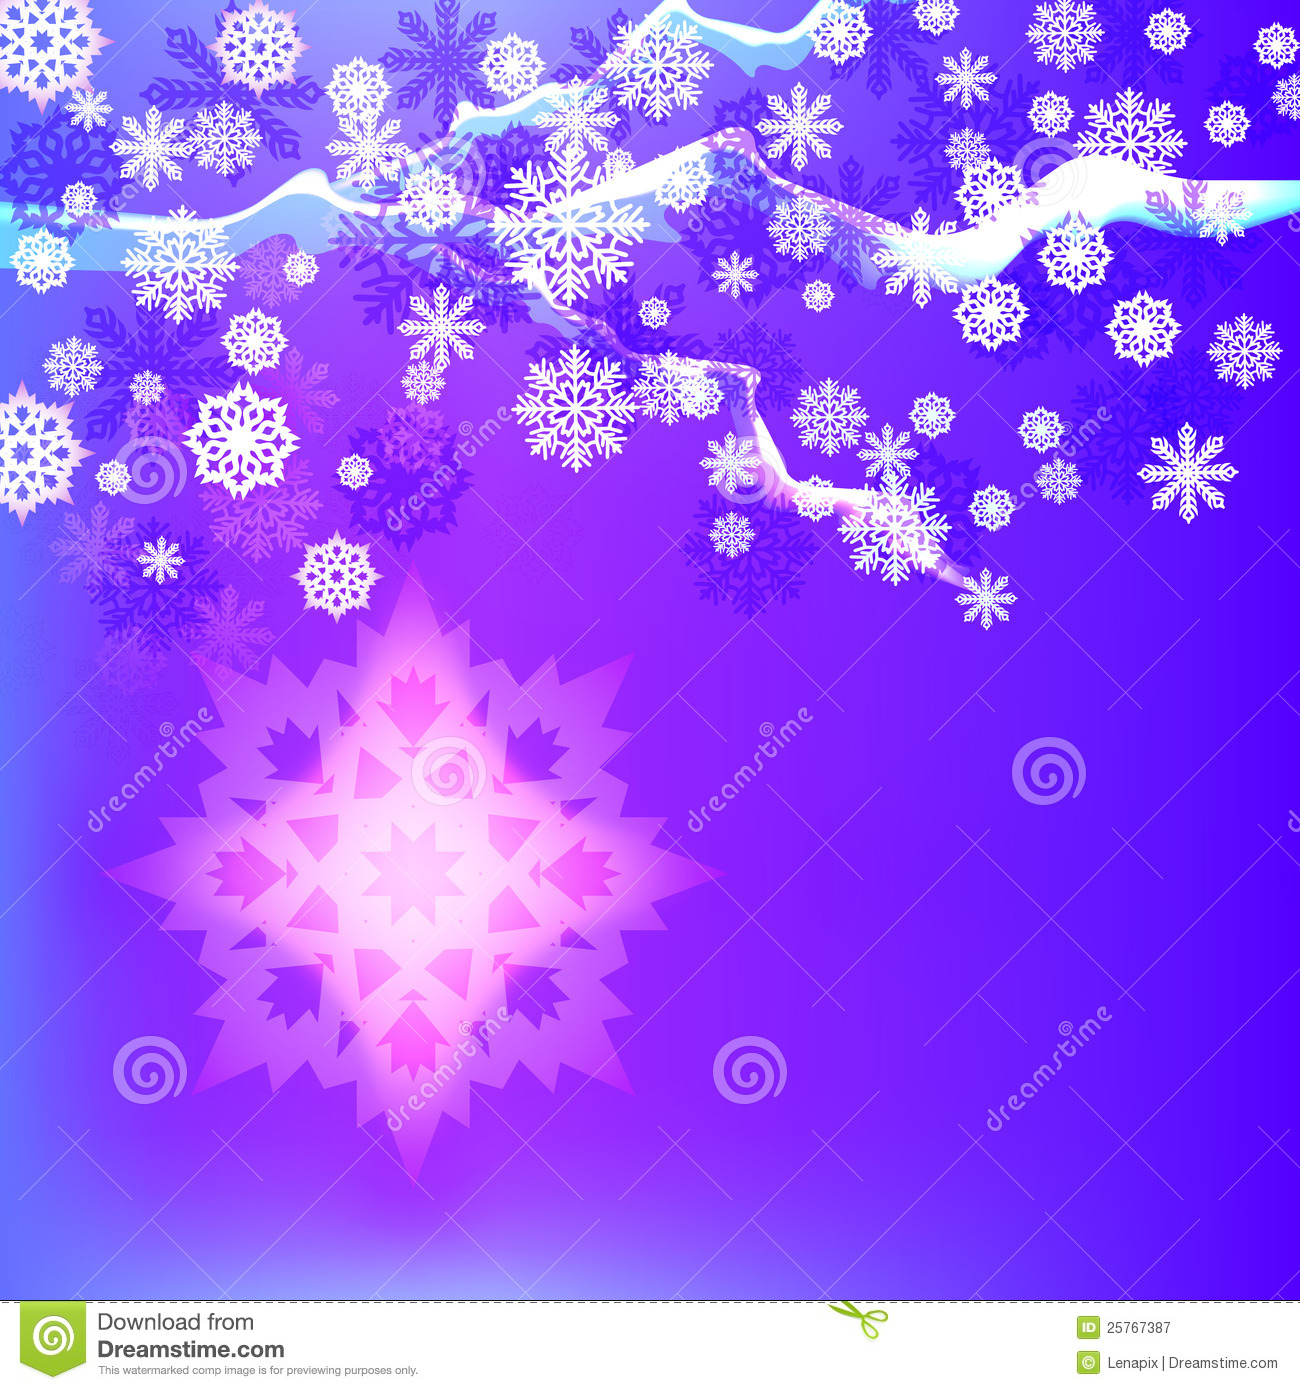 abstract winter background free - photo #25